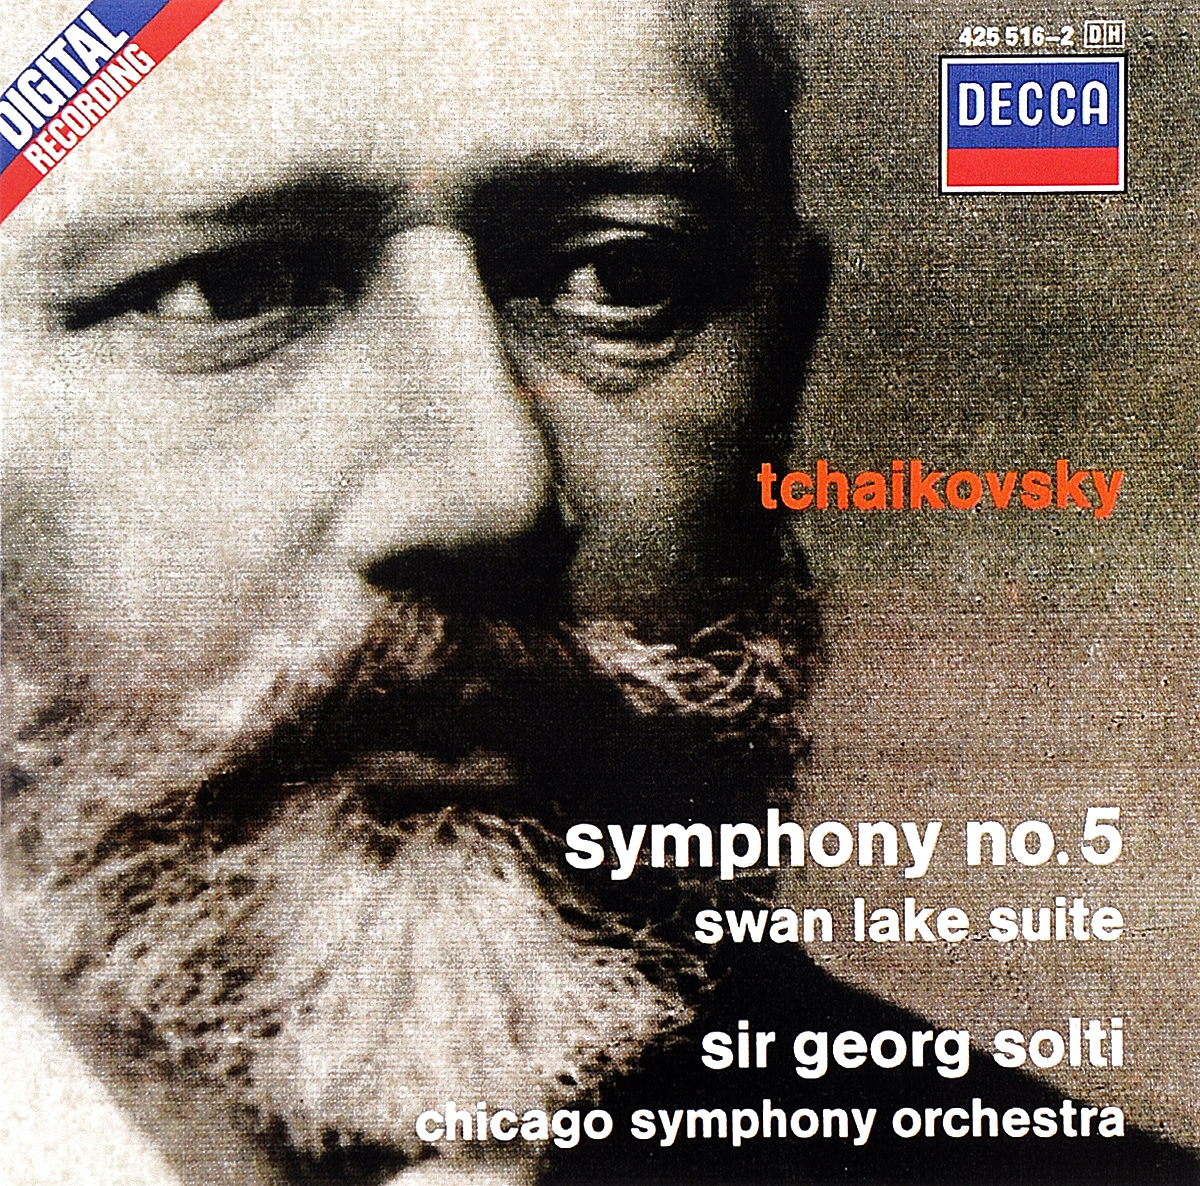 Sir Georg Solti. Tchaikovsky. Symphony No. 5 / Swan Lake Suite